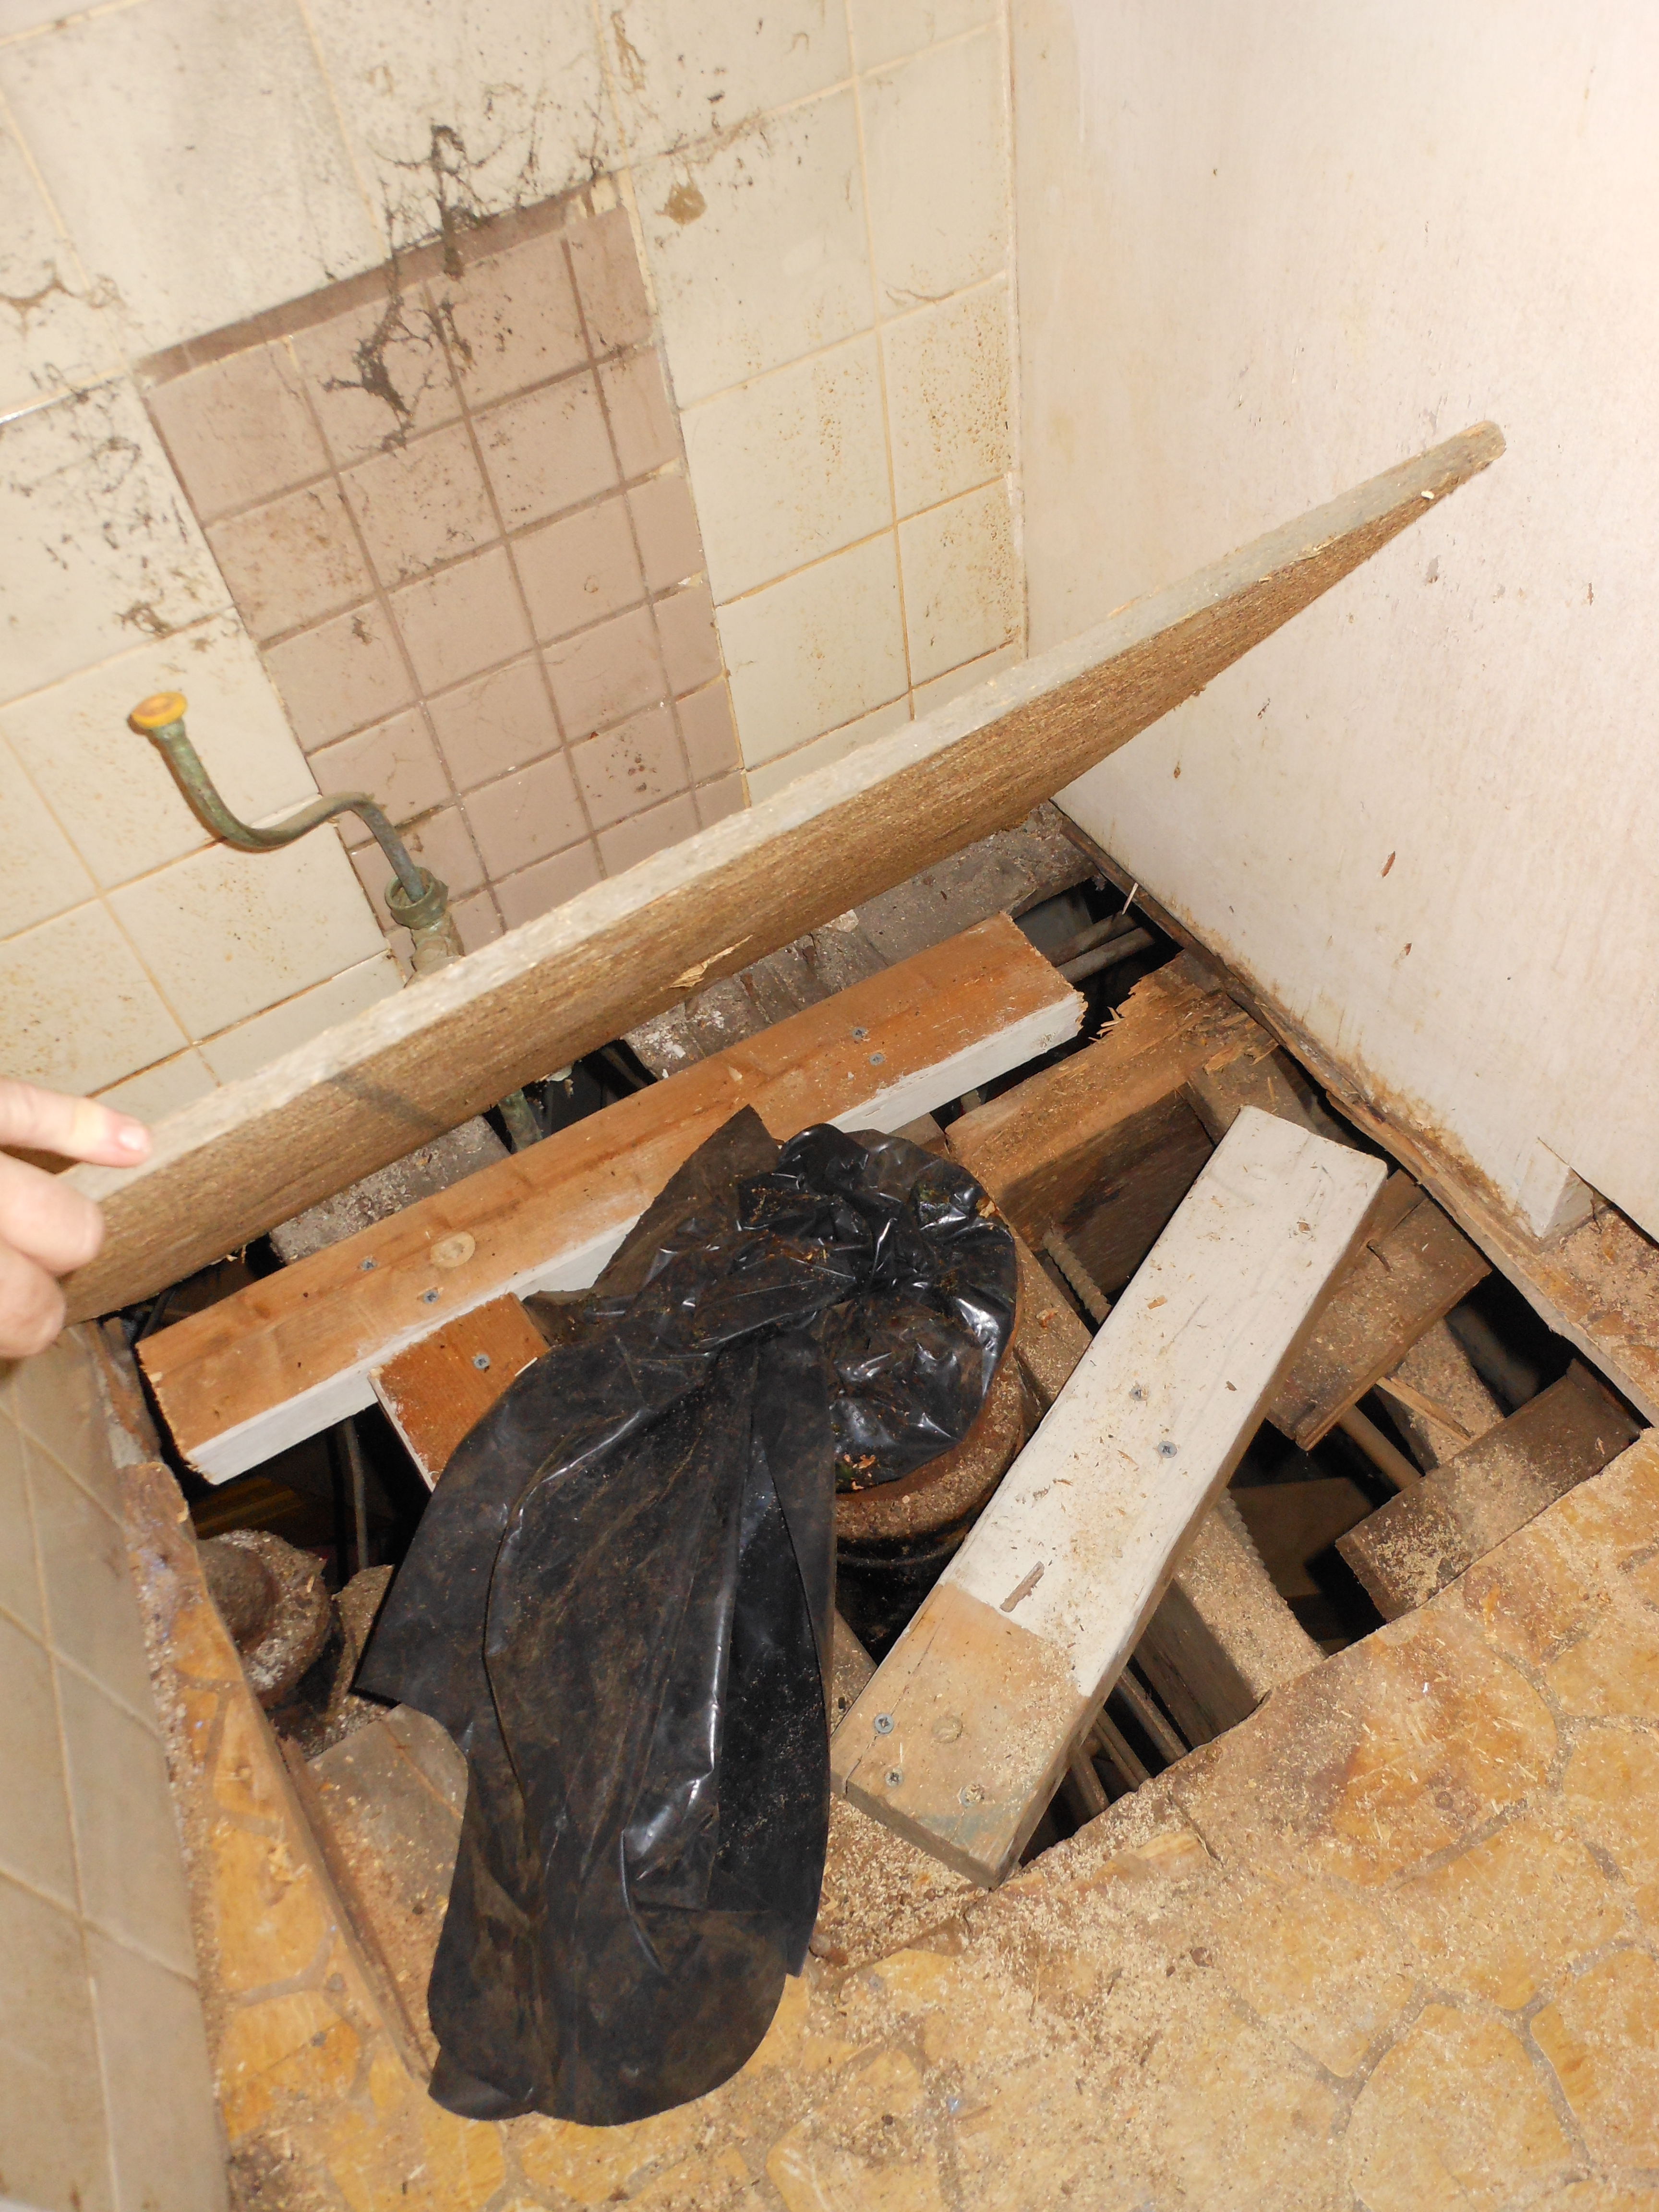 Bathroom Gutting and Floor Replacement